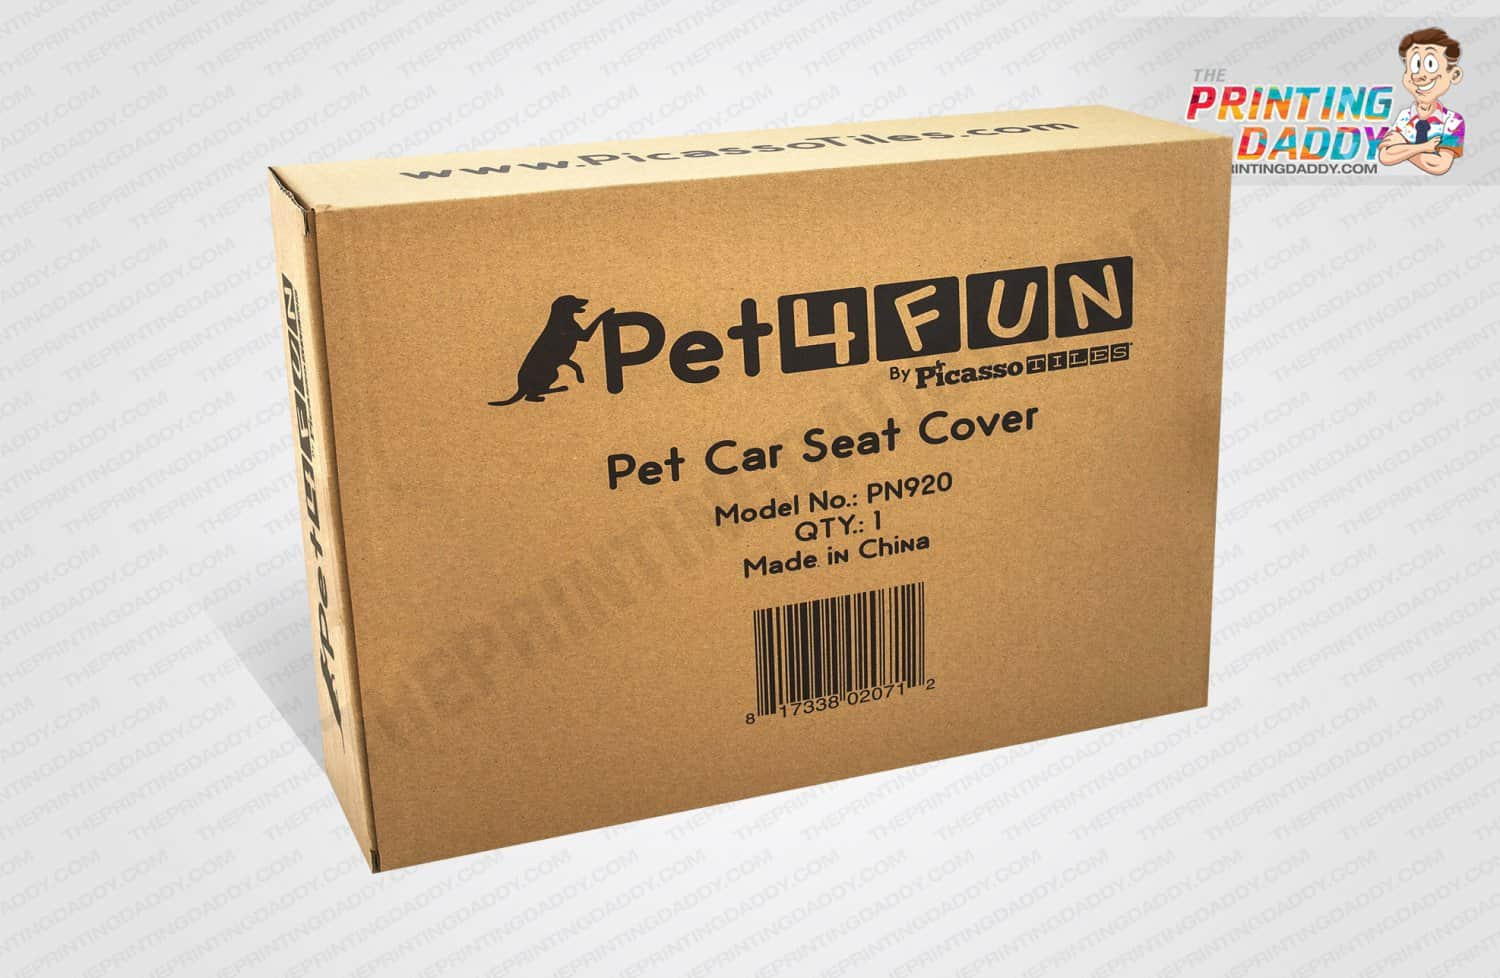 Automotive Rubber Packaging Boxes The Printing Daddy